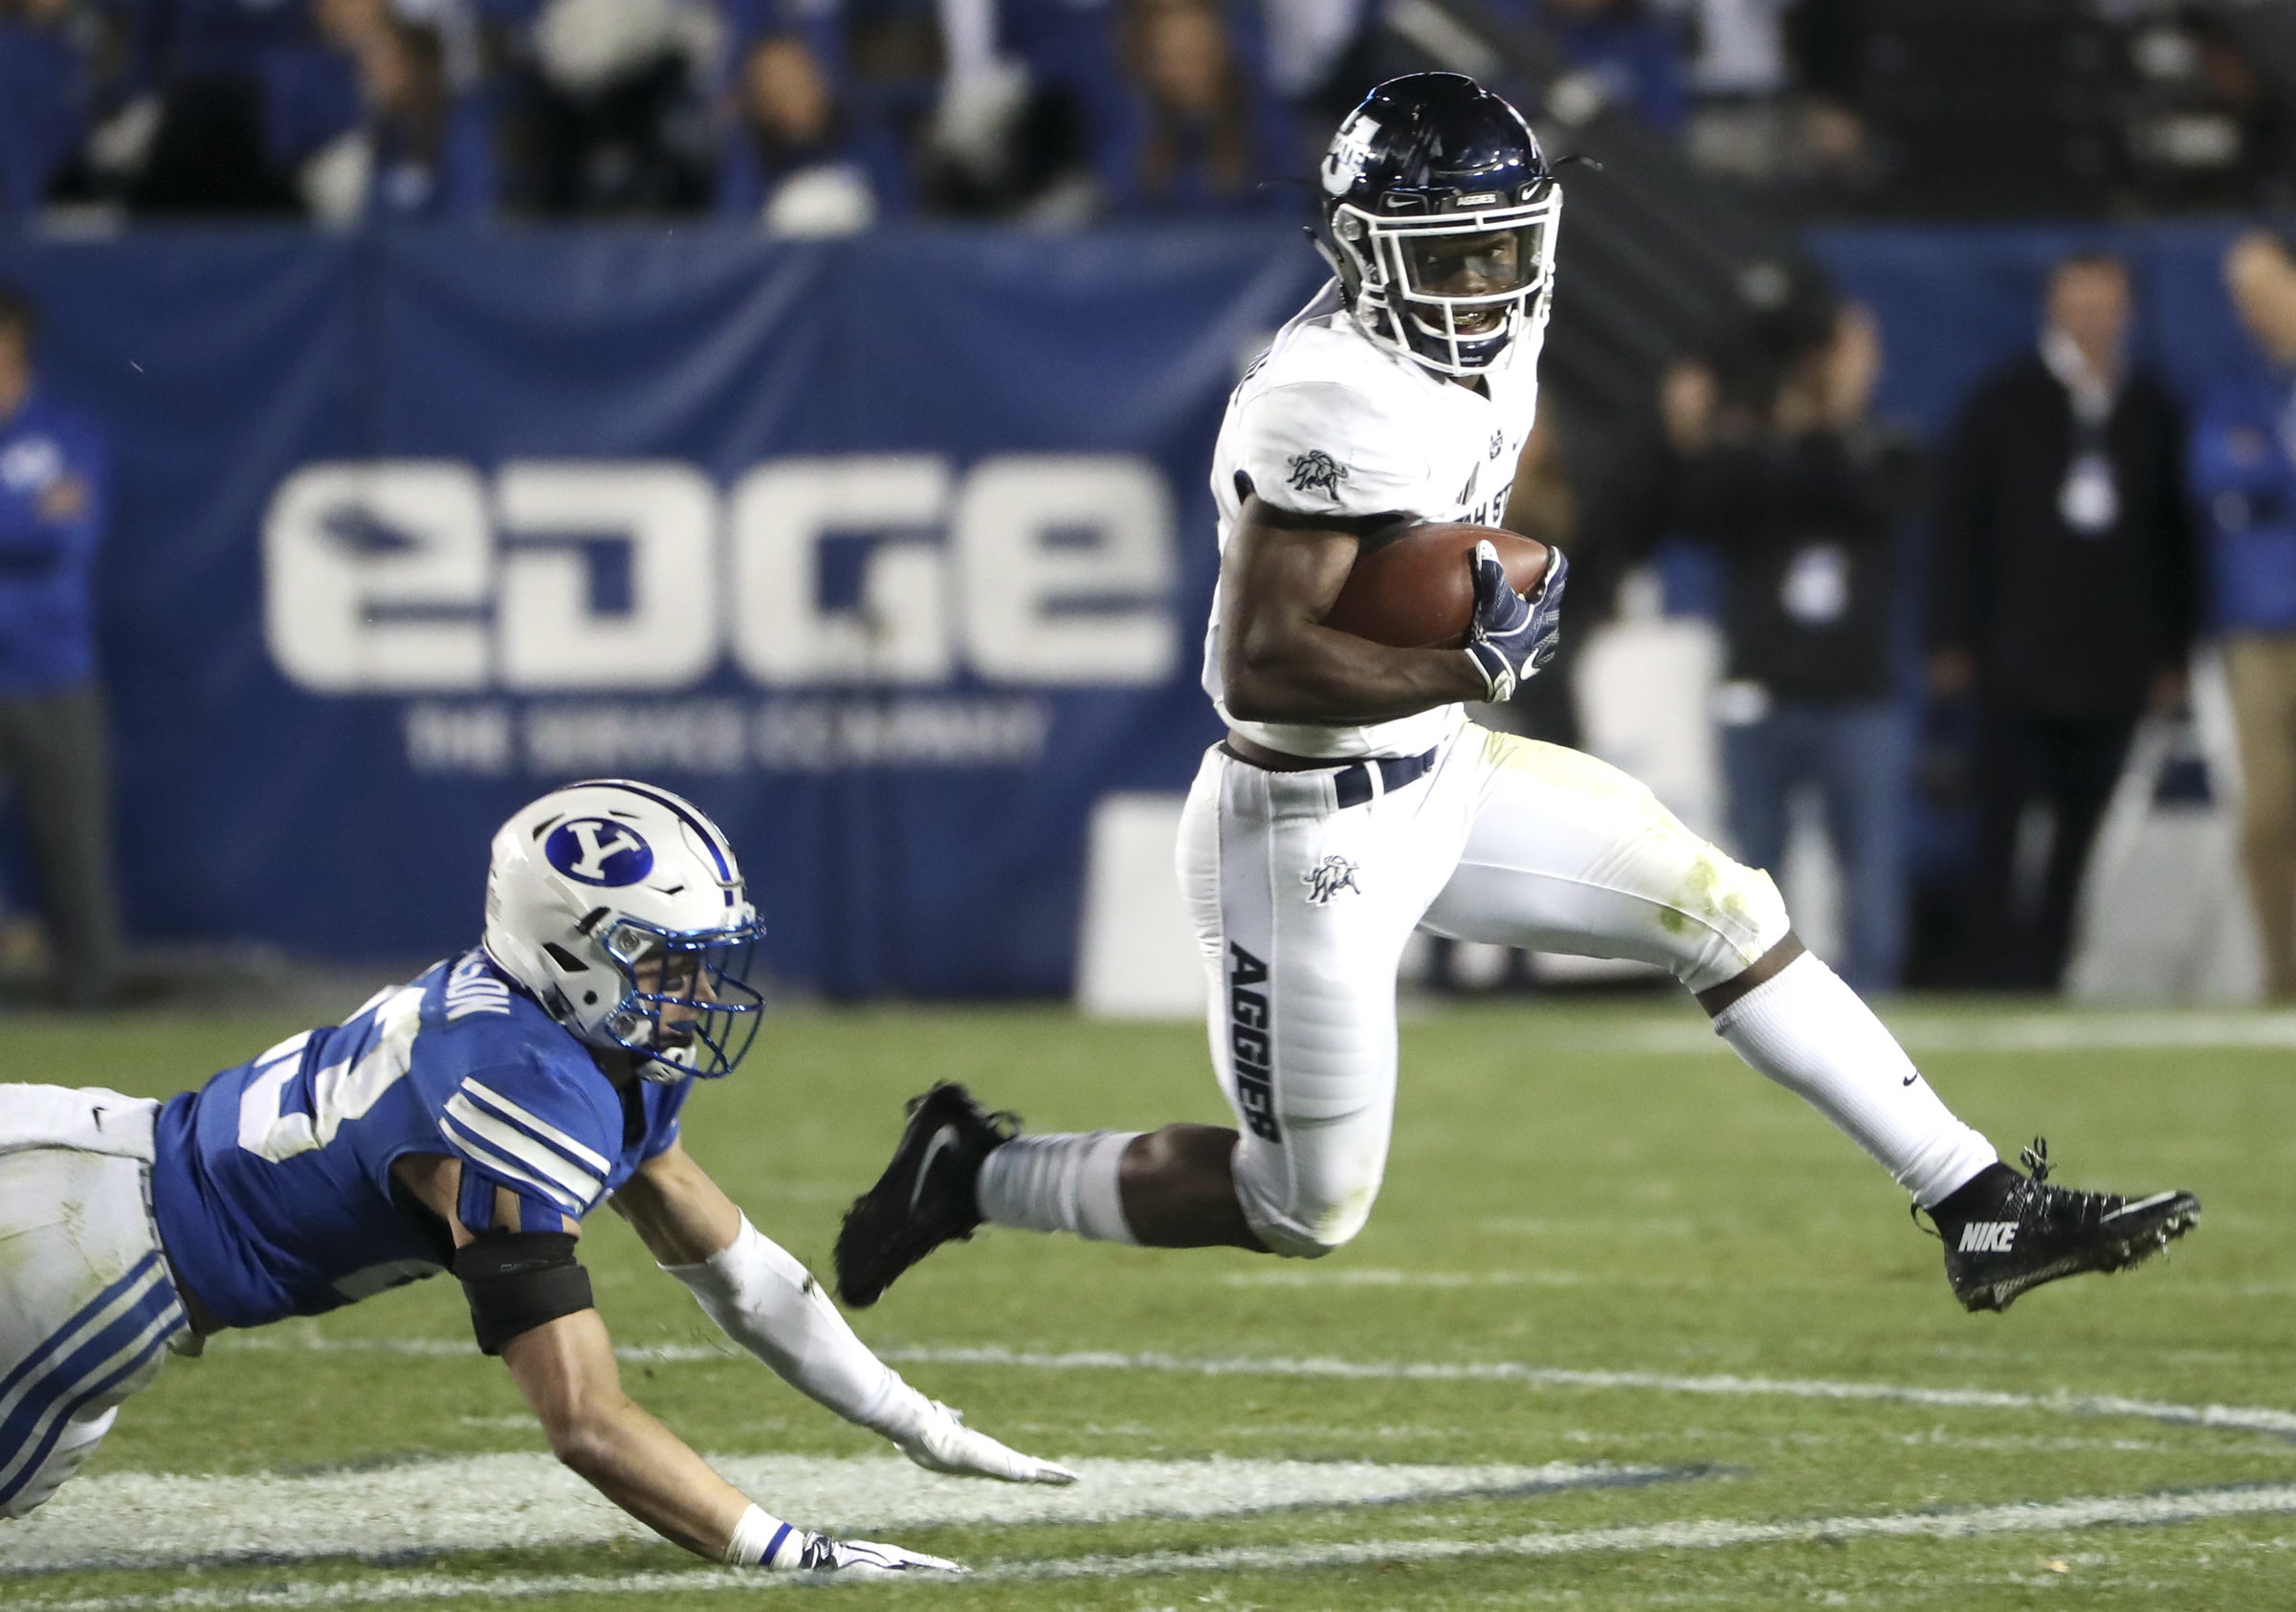 Utah State Aggies running back Darwin Thompson (5) sweeps around the end during the Utah State versus BYU football game at LaVell Edwards Stadium in Provo on Friday, Oct. 5, 2018.